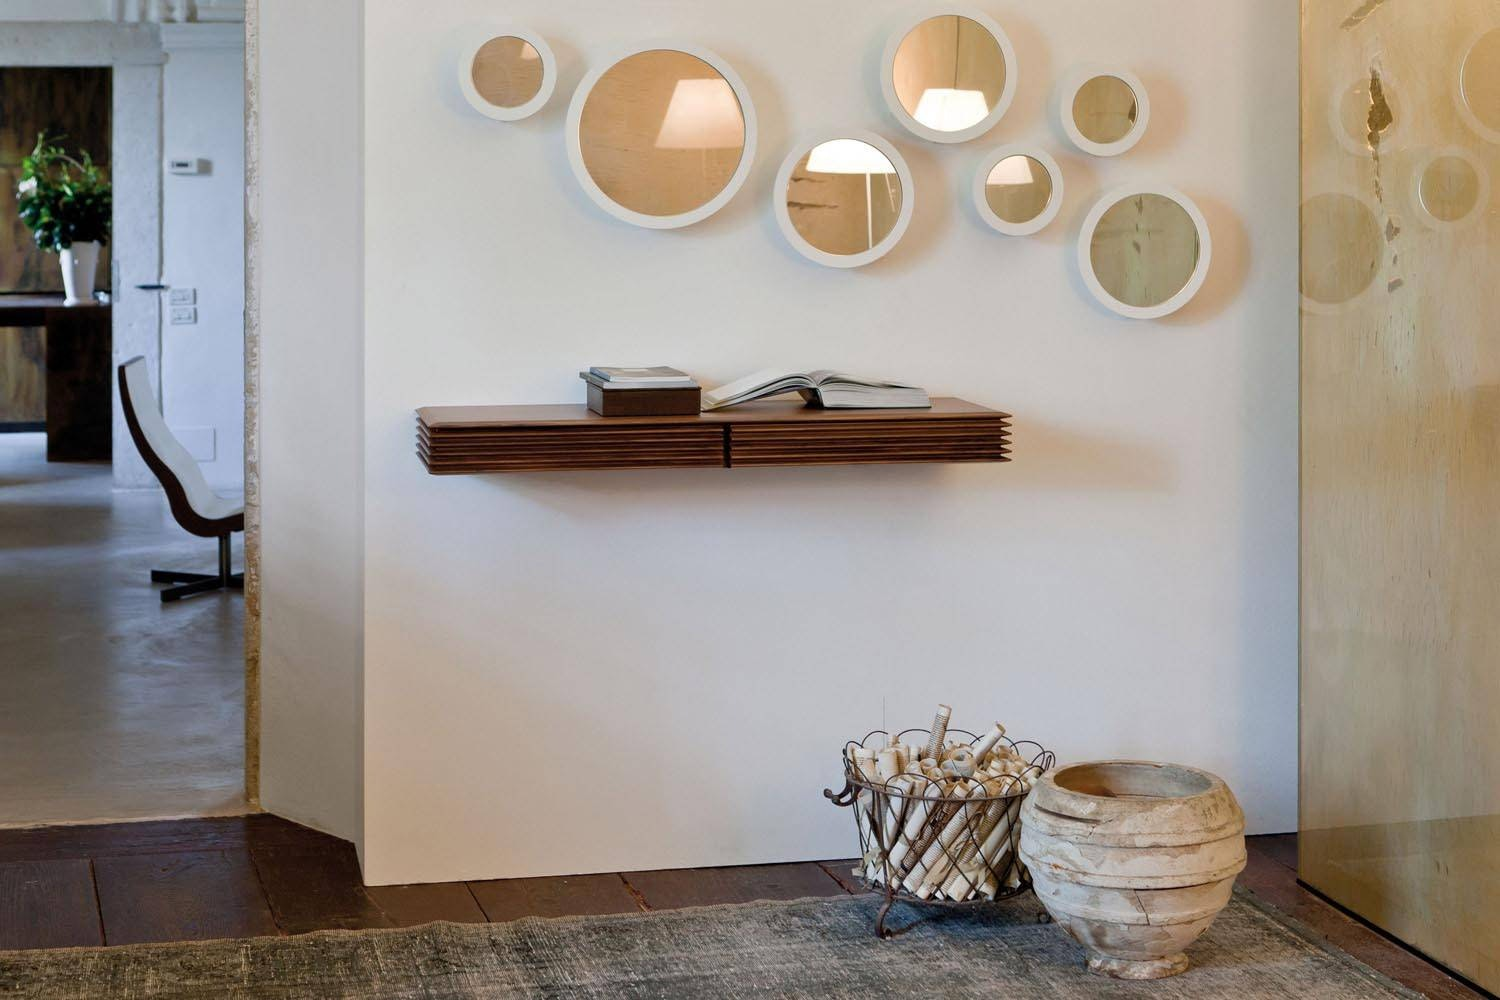 Lineas Shelf by T. Colzani for Porada